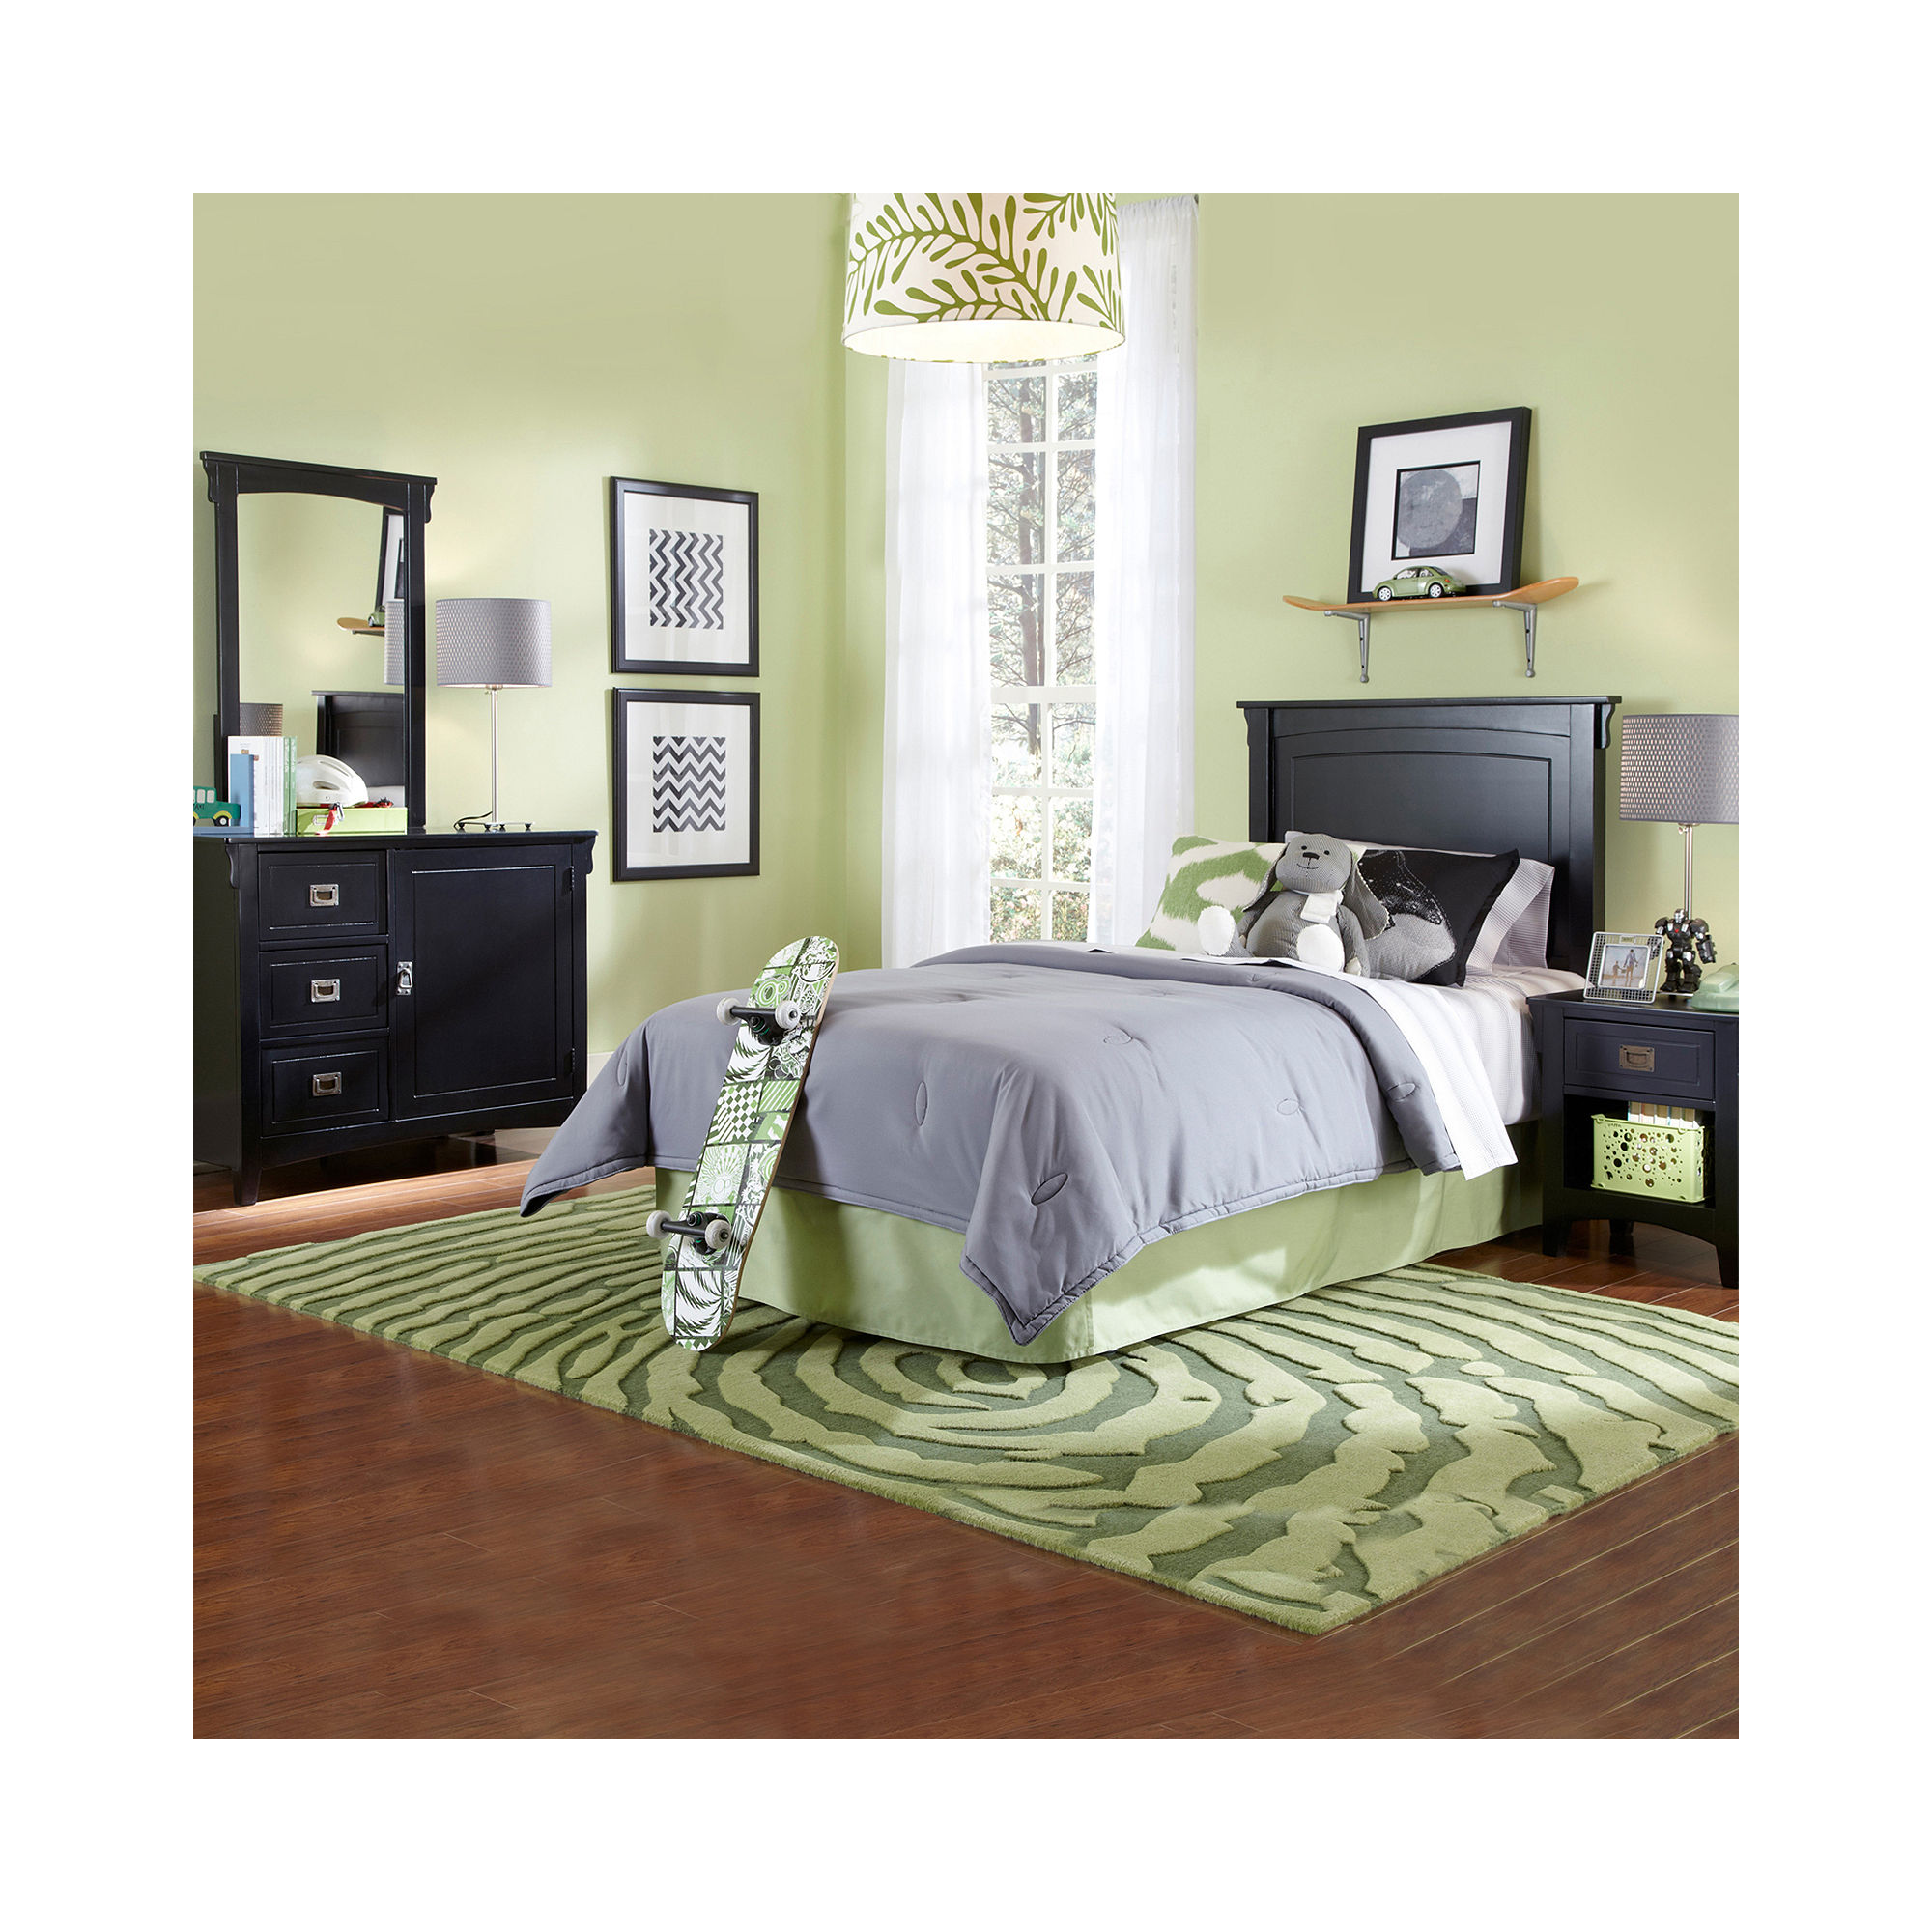 jcpenney bedroom sets for adults search